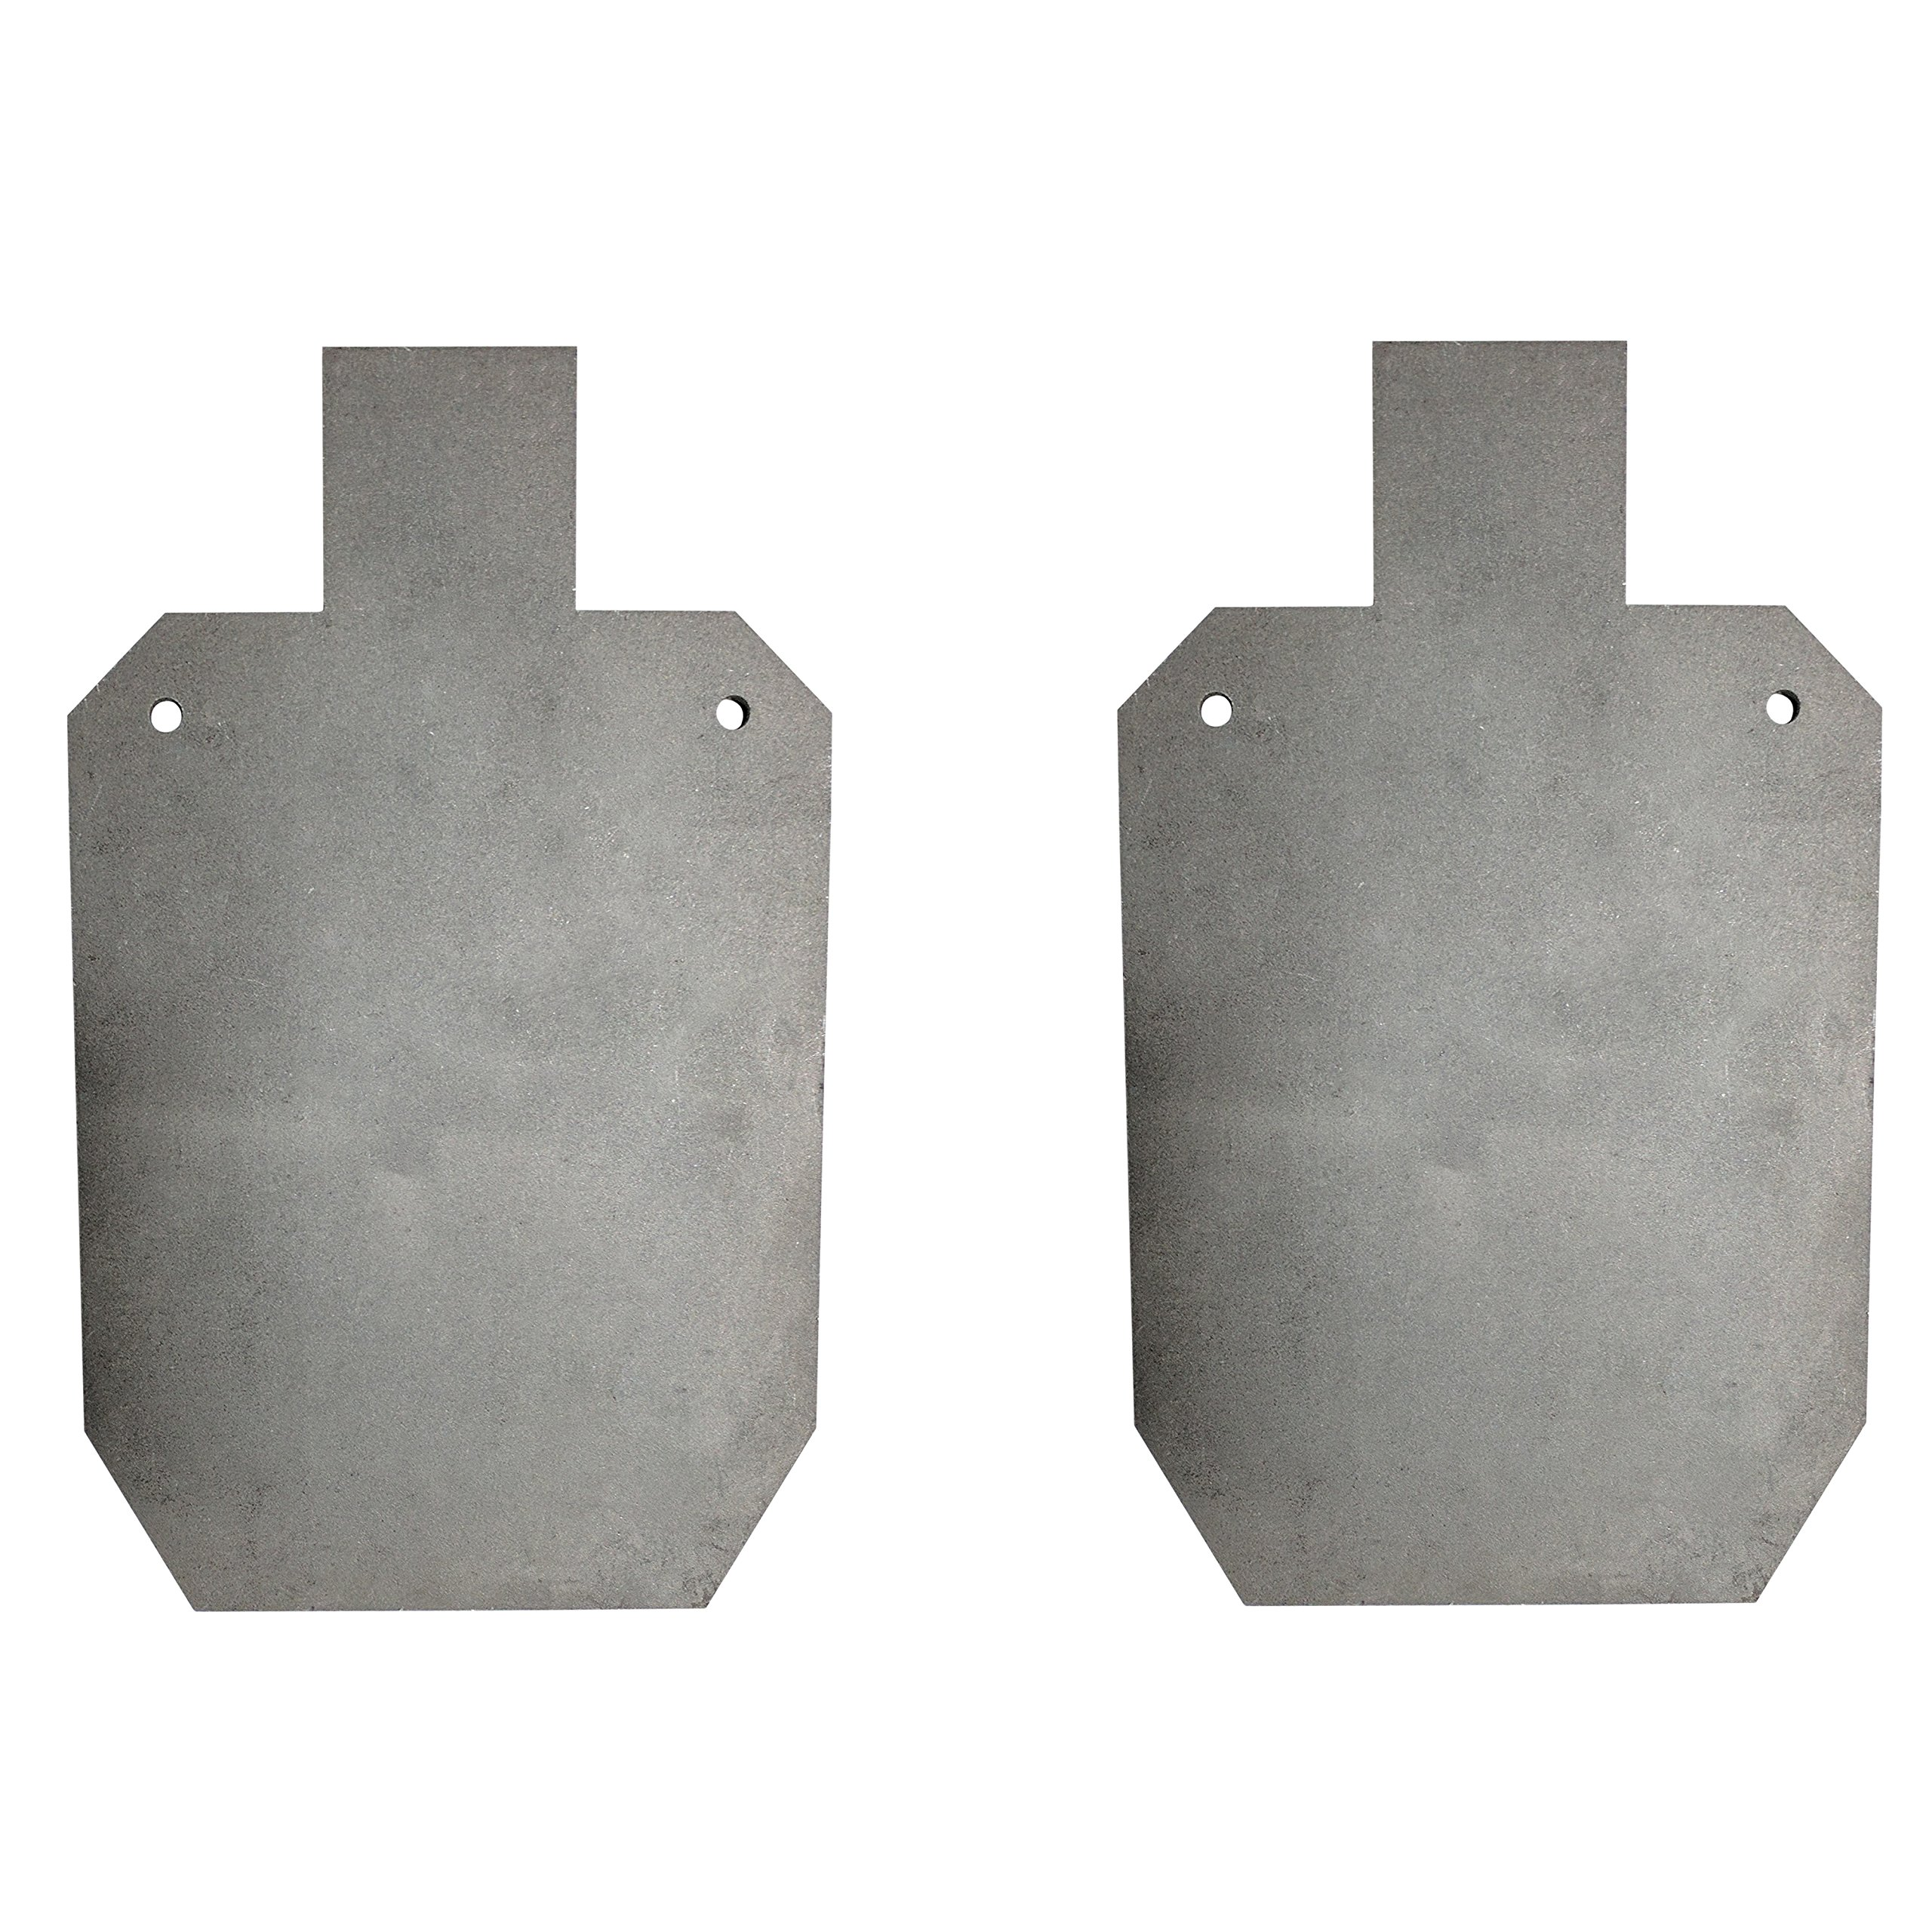 Titan AR500 Silhouette Style Steel Plate Shooting Target 20''x12'' 3/8'' Thick (20'' x 12'' (Pair))